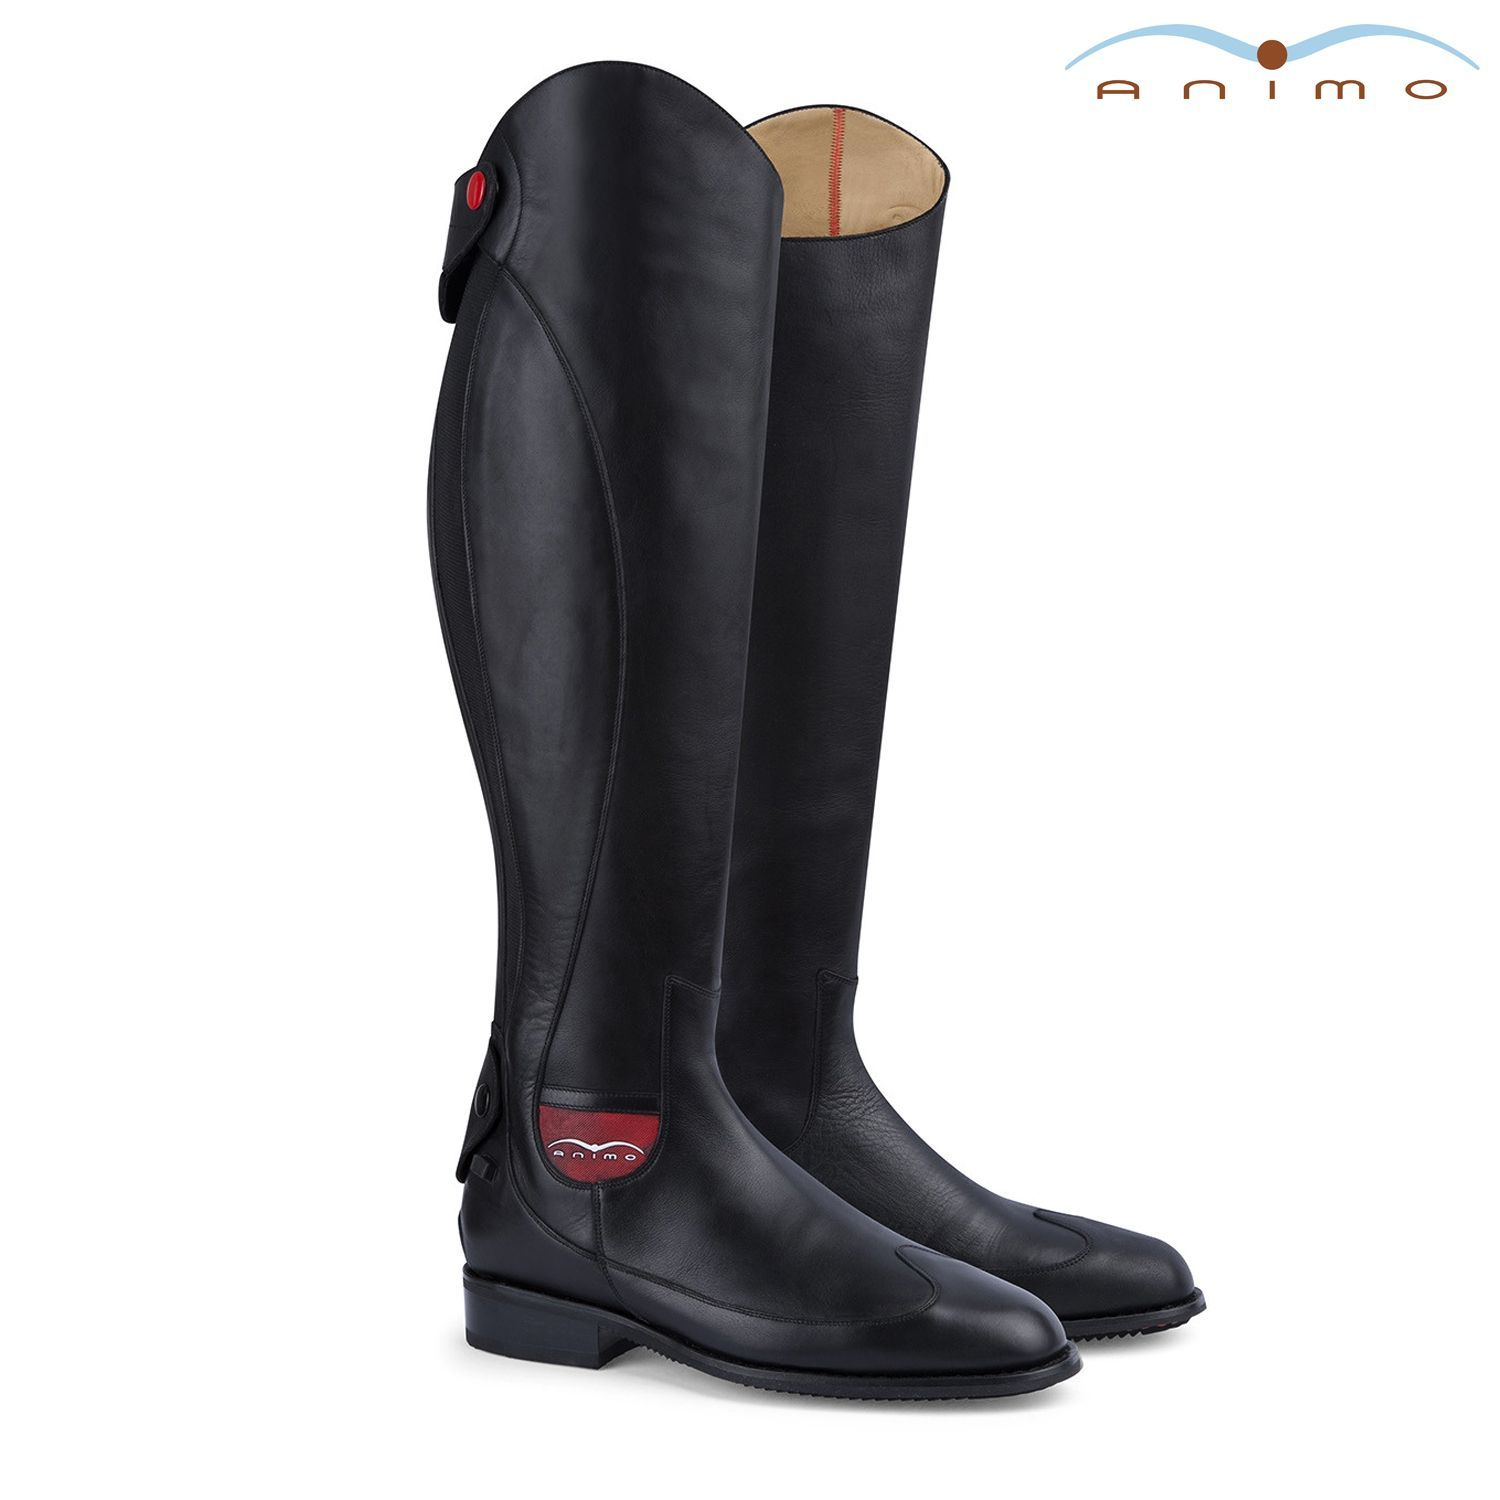 """Women's Competition Boots """"Zico"""" by Animo"""